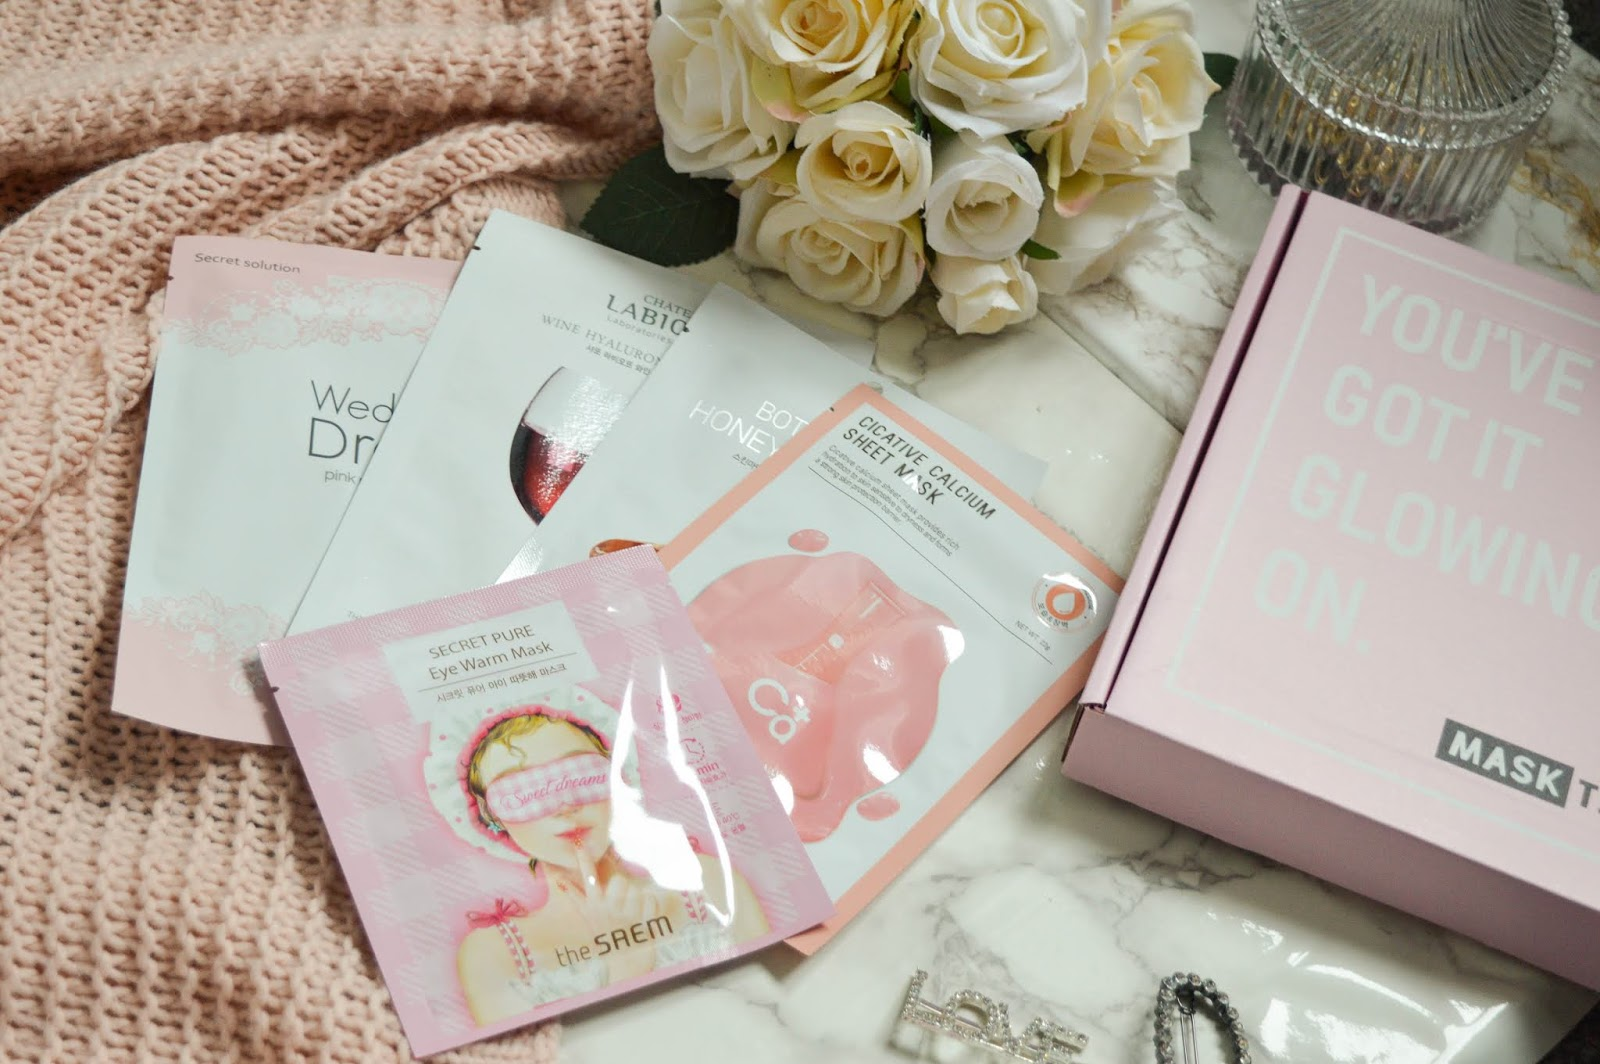 My Mask Time Box Review